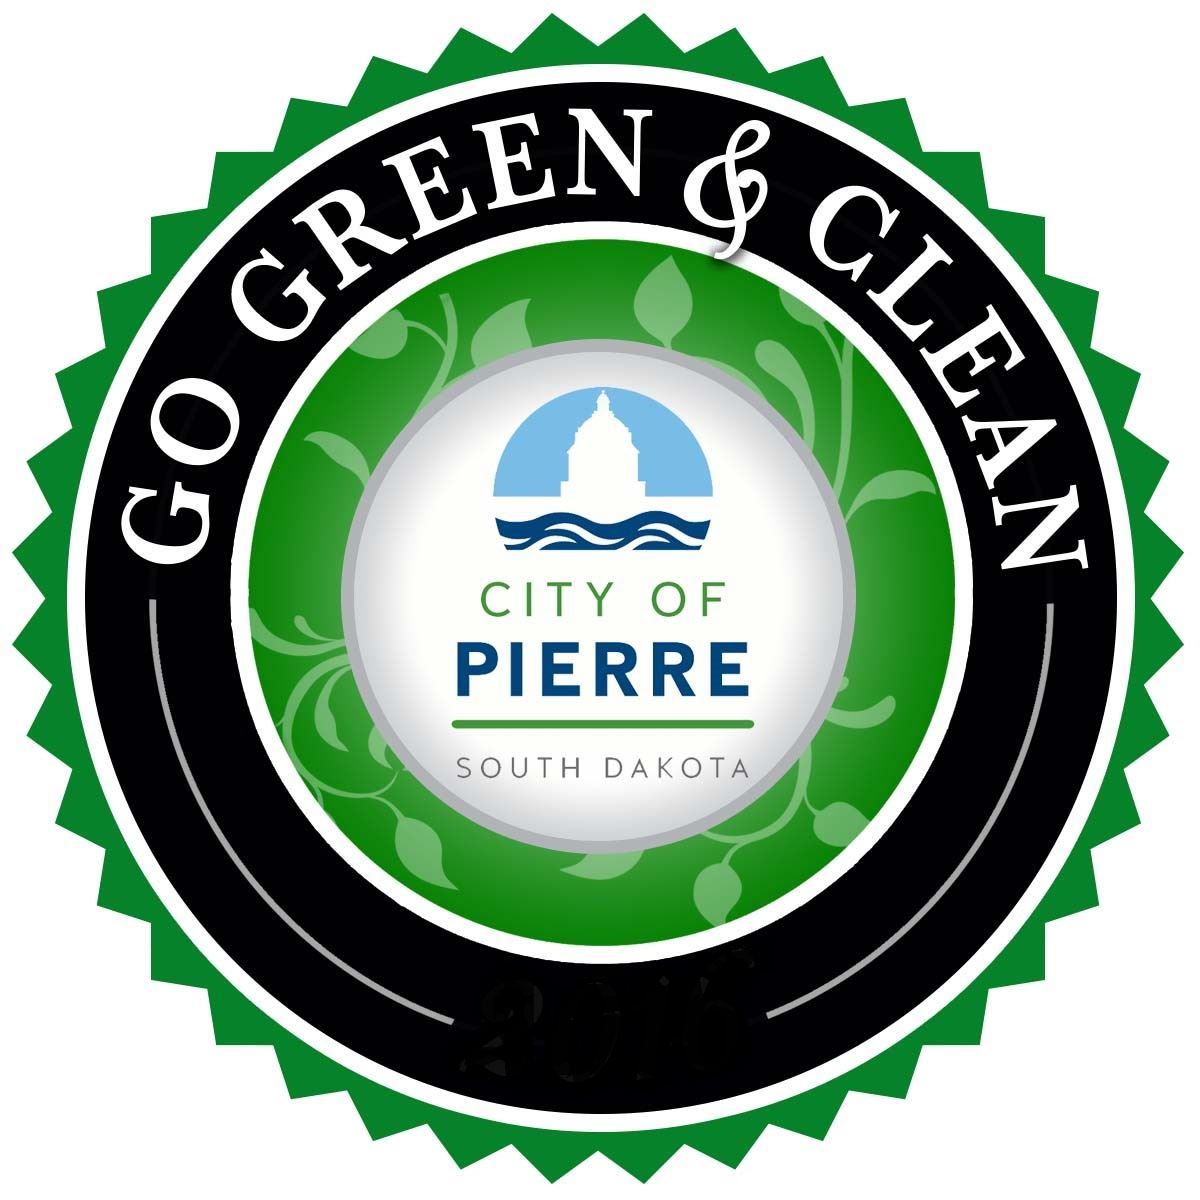 GO GREEN AND CLEAN LOGO